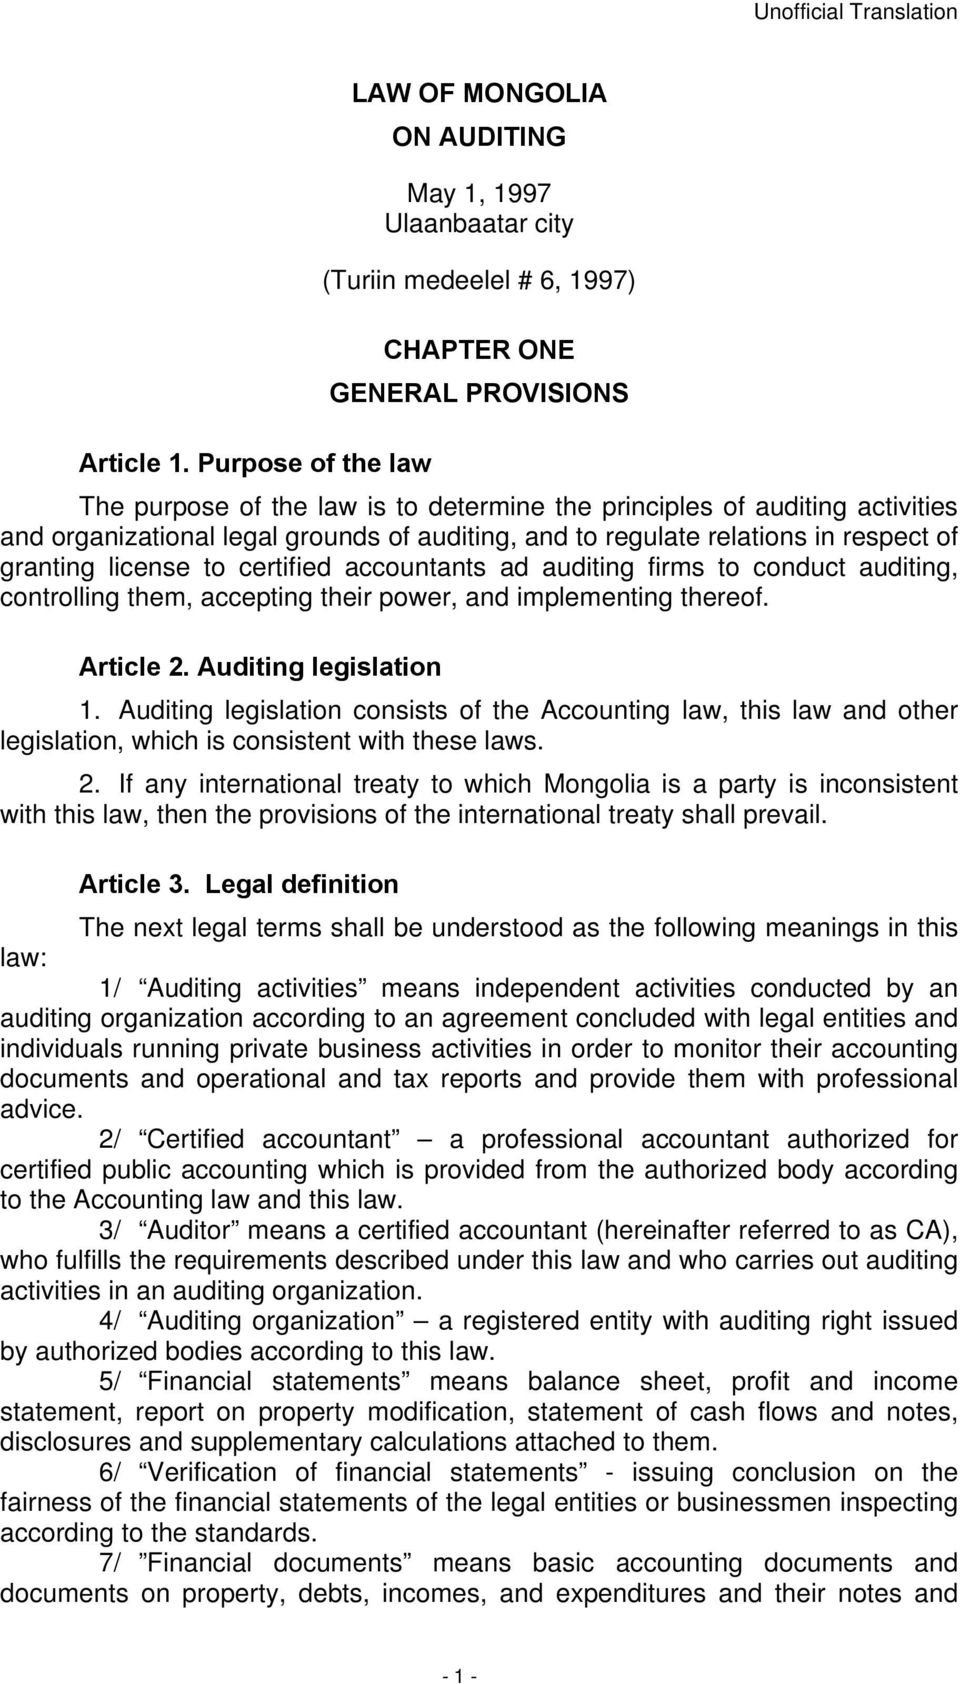 auditing activities and organizational legal grounds of auditing, and to regulate relations in respect of granting license to certified accountants ad auditing firms to conduct auditing, controlling